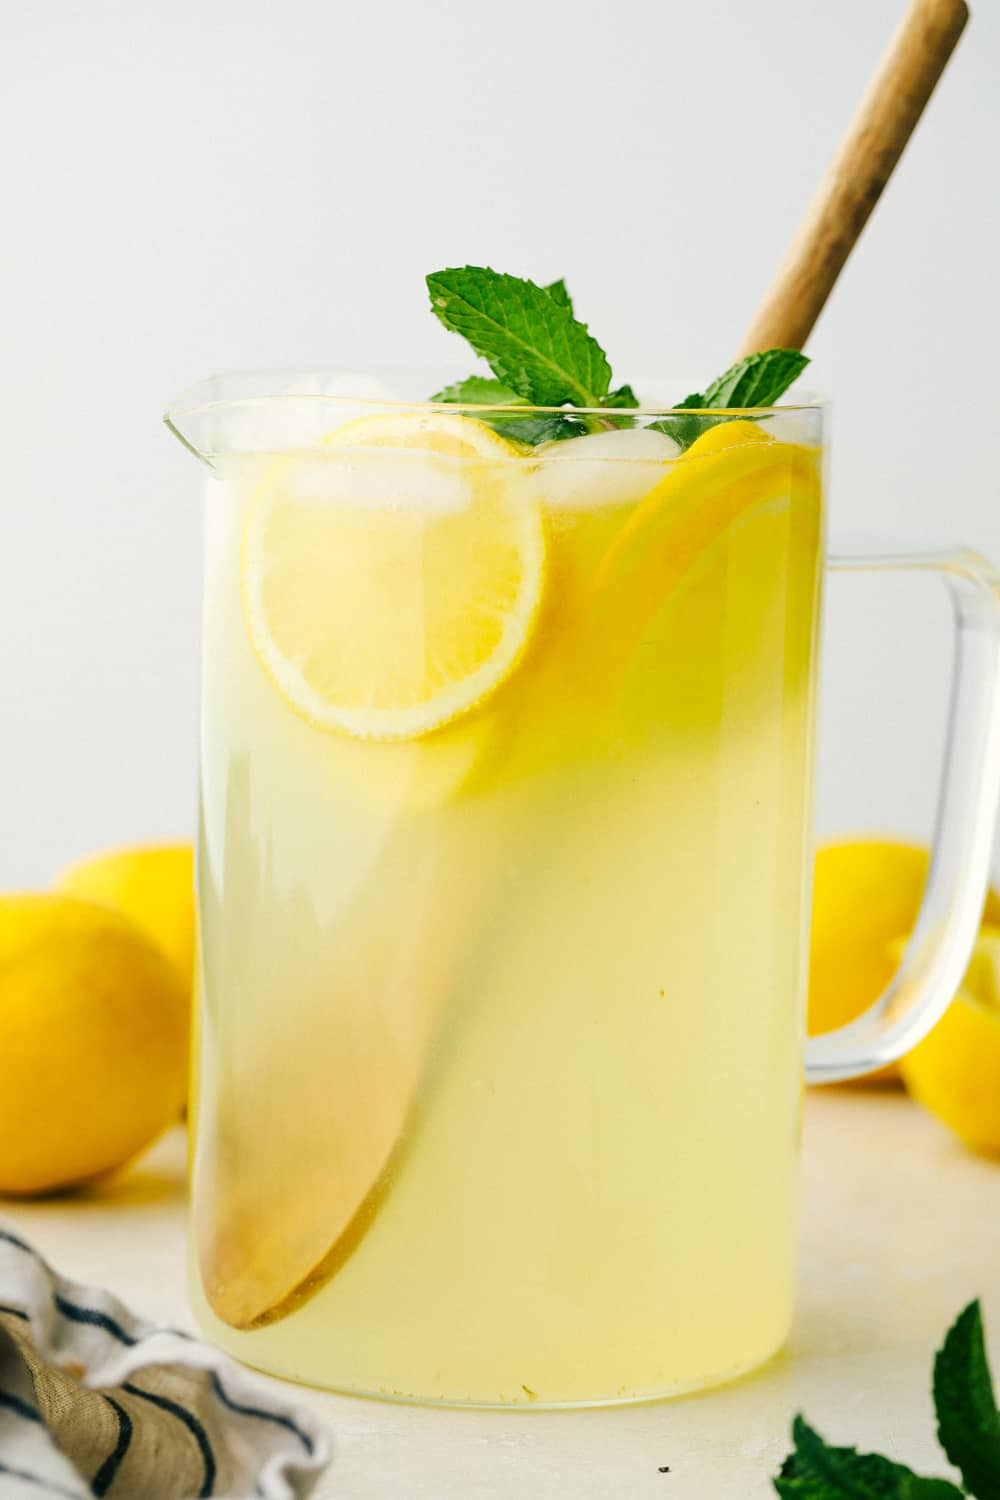 A pitcher of homemade lemonade with lemons.